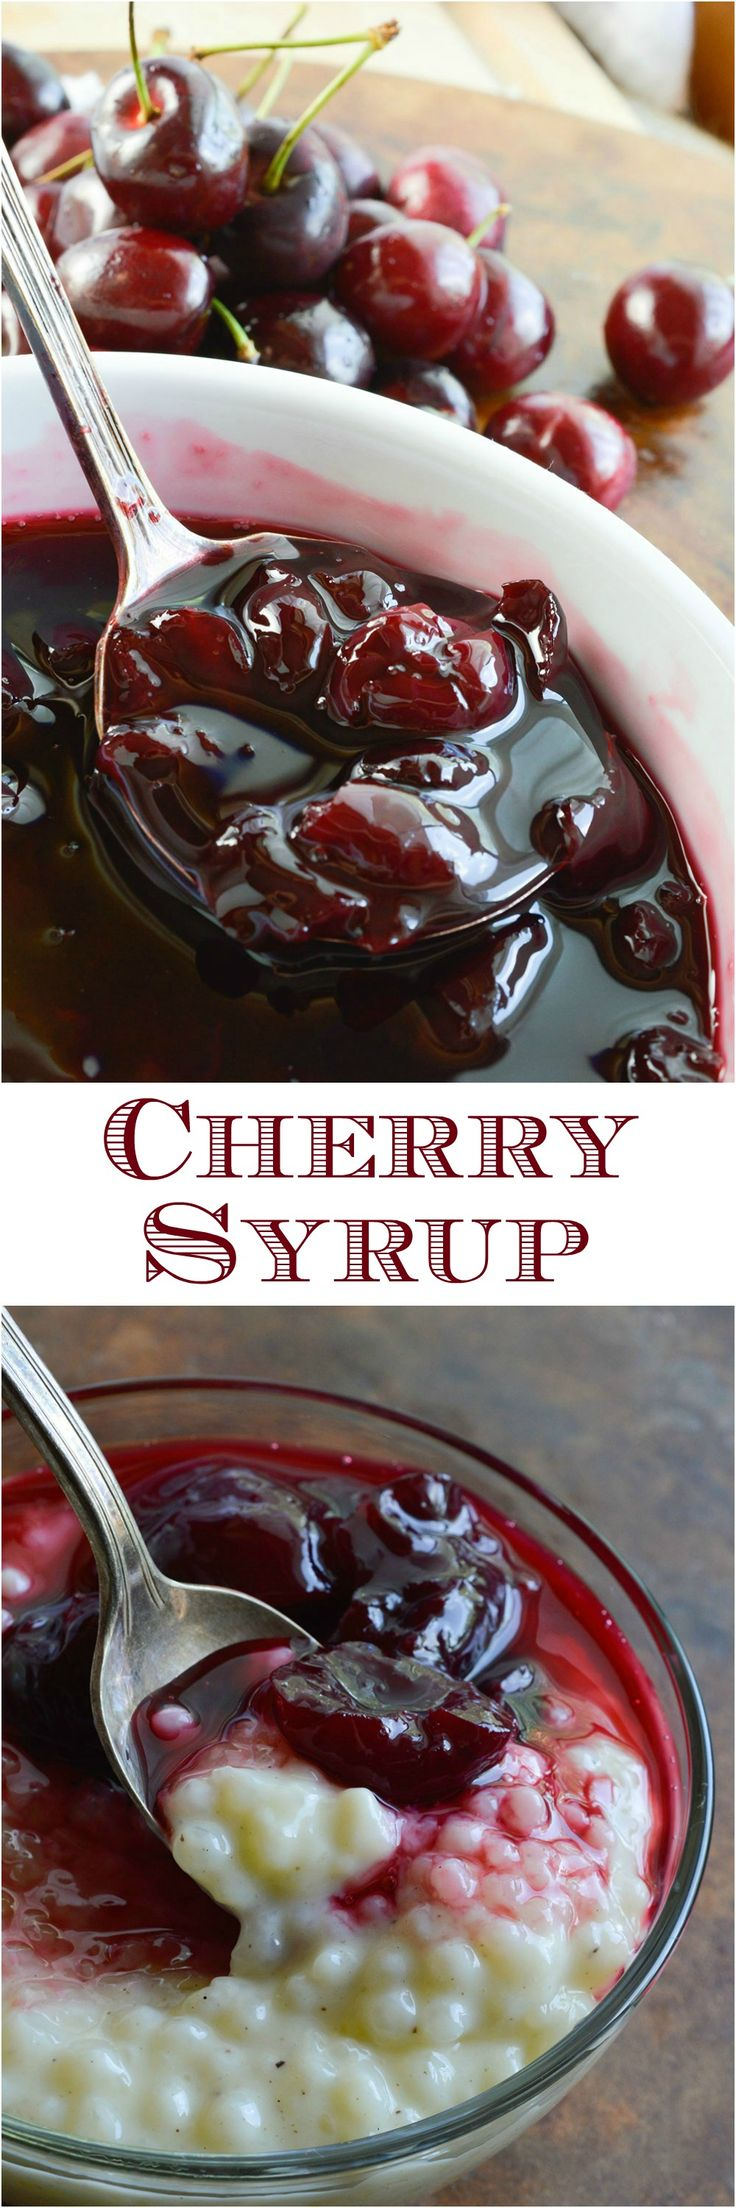 This Cherry Syrup Recipe makes a great homemade sauce for just about any dessert! Serve with breakfast pancakes, over yogurt or as an ice cream topping. The possibilities are endless!